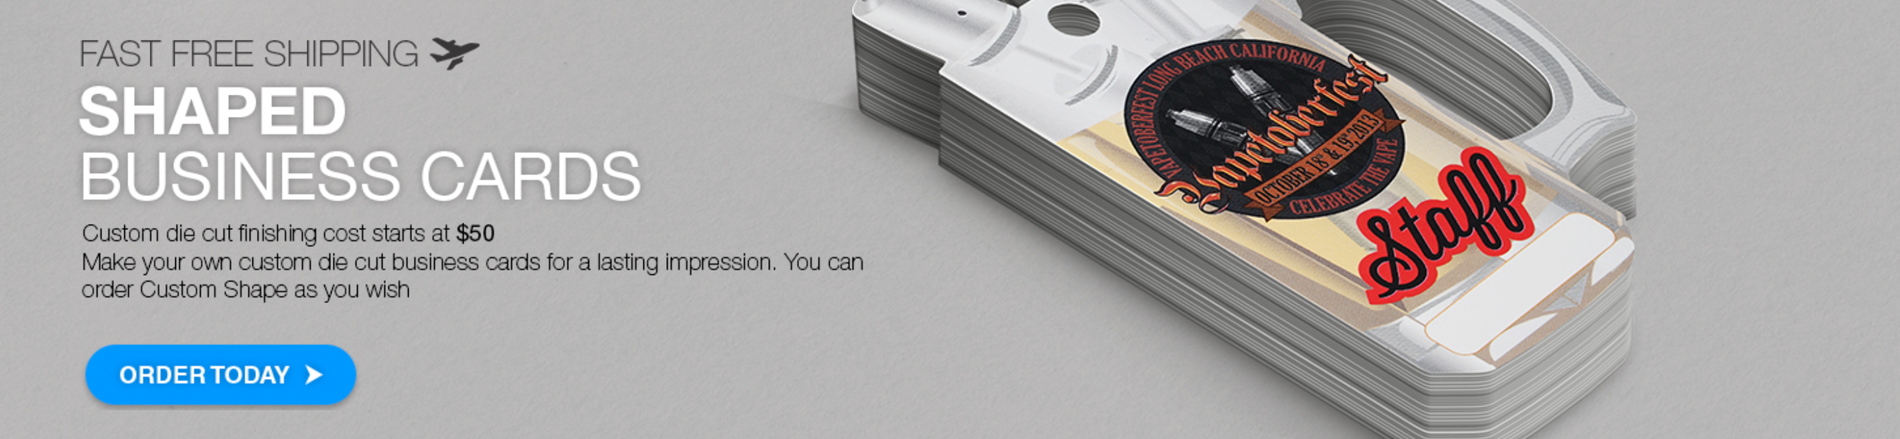 Shaped Business Cards by Aladdin Print